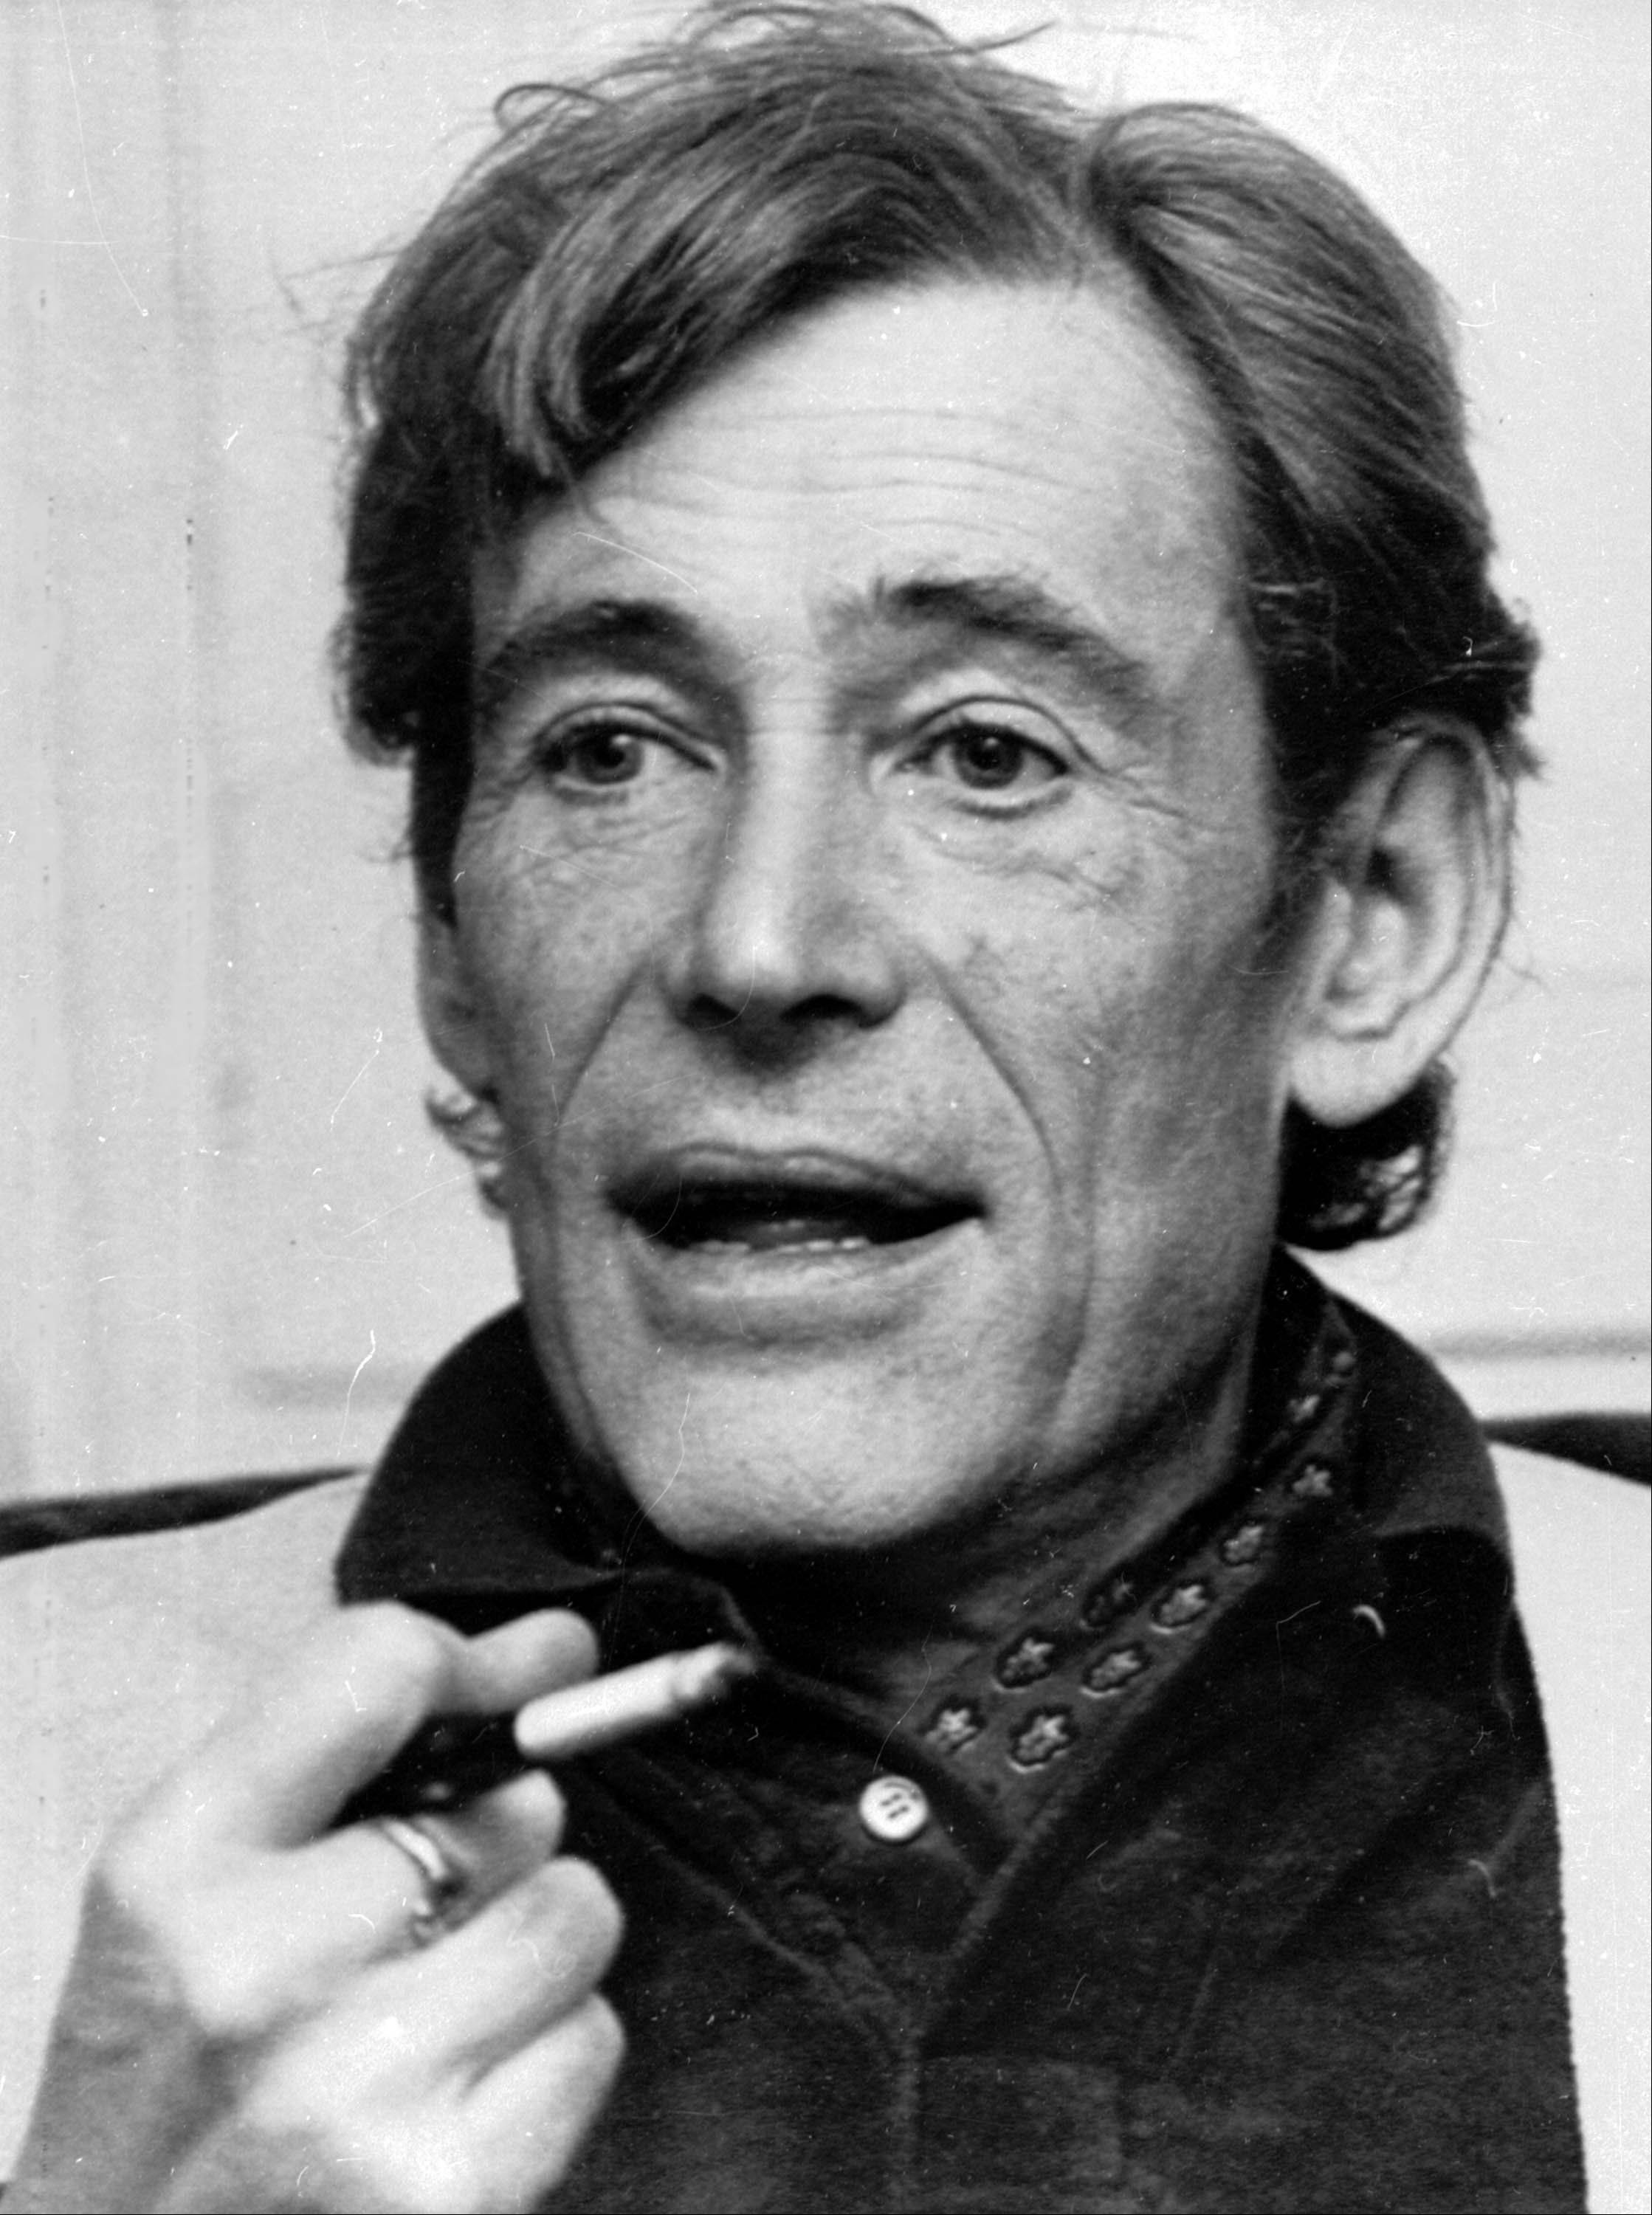 Actor Peter O'Toole smokes during an interview at his London home. O'Toole, the charismatic actor who achieved instant stardom as Lawrence of Arabia and was nominated eight times for an Academy Award, has died. He was 81.